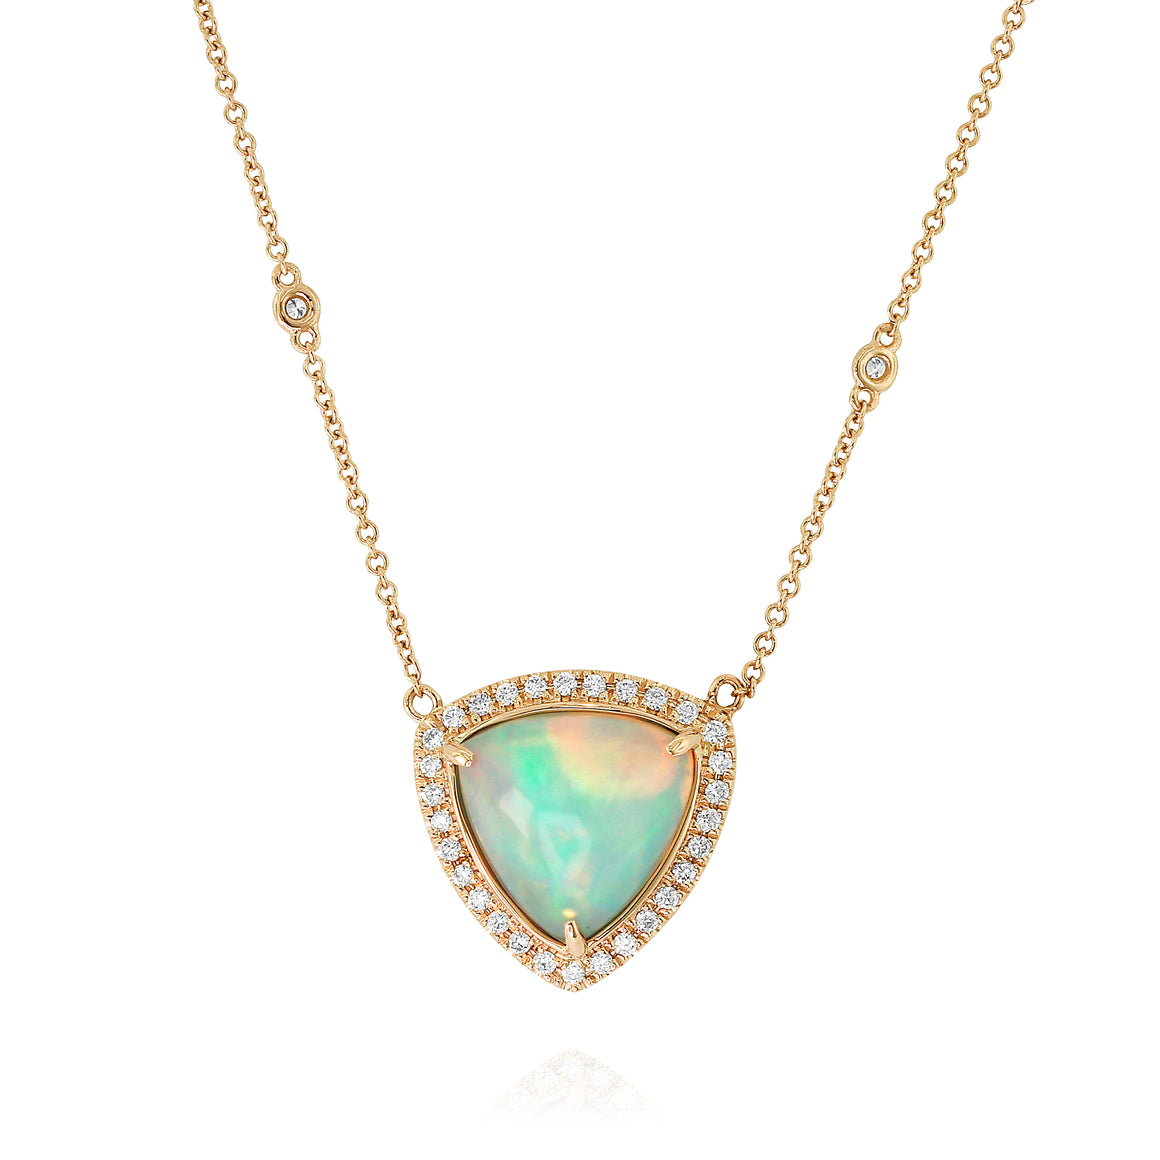 Yael 18k Yellow Gold, Opal and Diamond Necklace